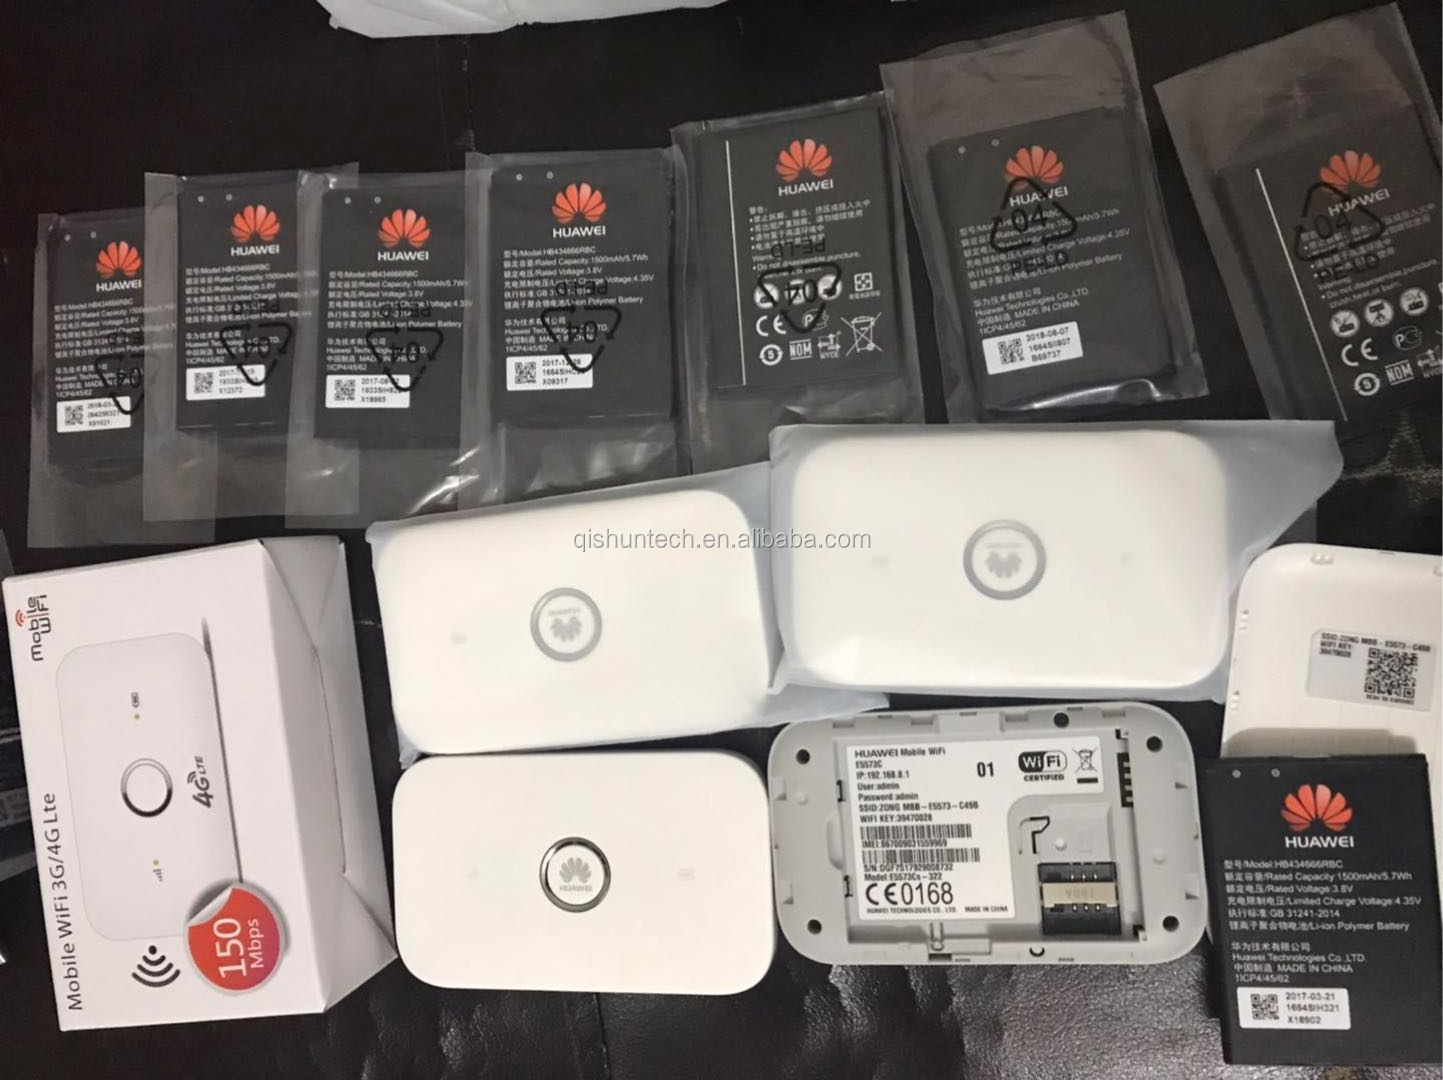 Original Unlocked Huawei E5573 Wifi Router E5573cs-322 E5573s-320 Mobile Hotspot Wireless 4G LTE router pk R216 R218 Mifis